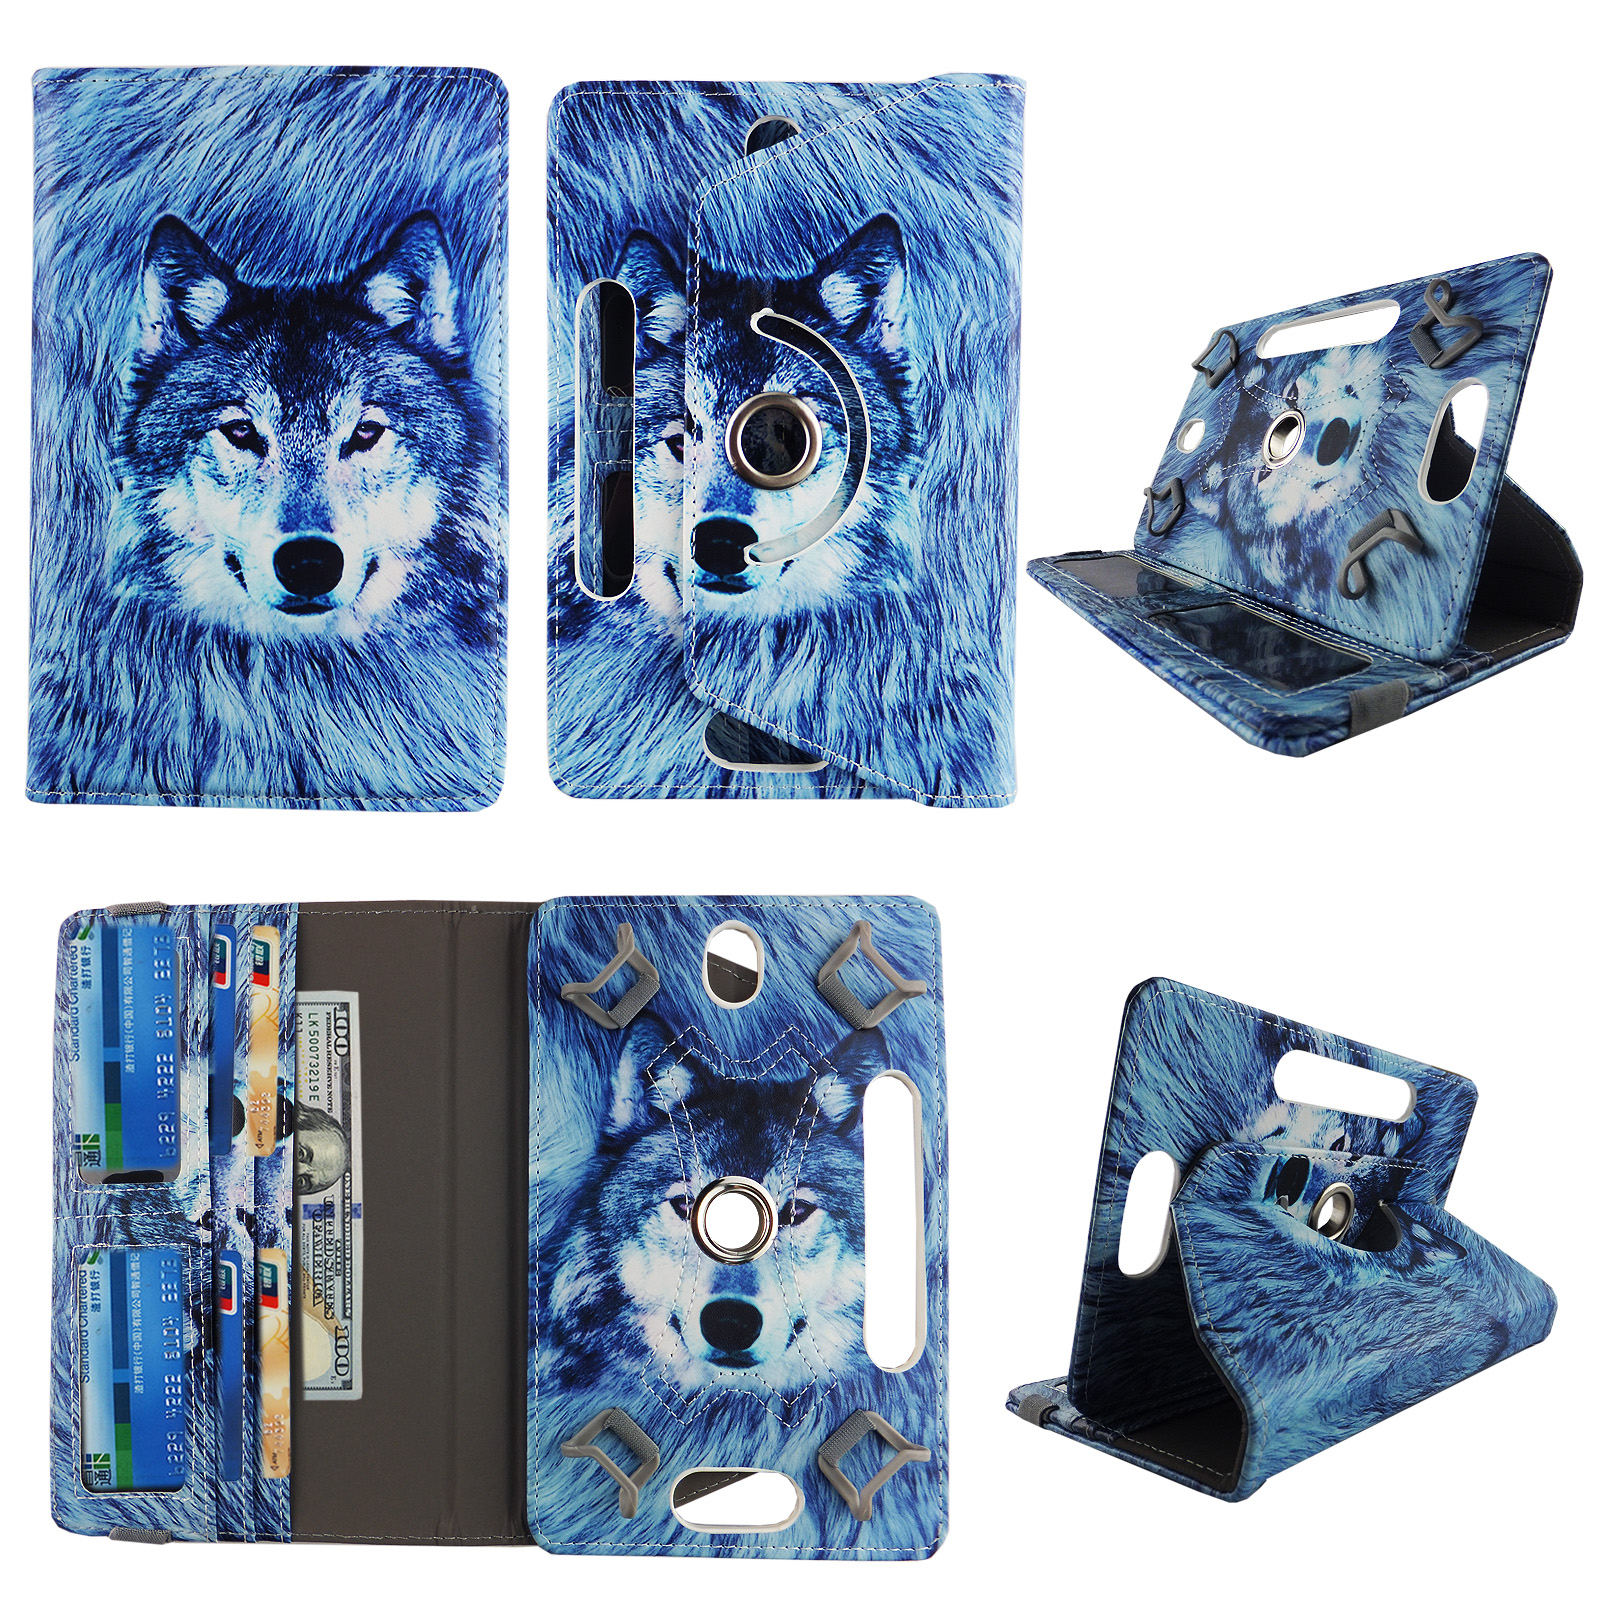 "Snow Wolf tablet case 10 inch for Samsung Galaxy Tab A 9.7 10"" 10 inch android tablet cases 360 rotating slim folio stand protector pu leather cover travel e-reader cash slots"